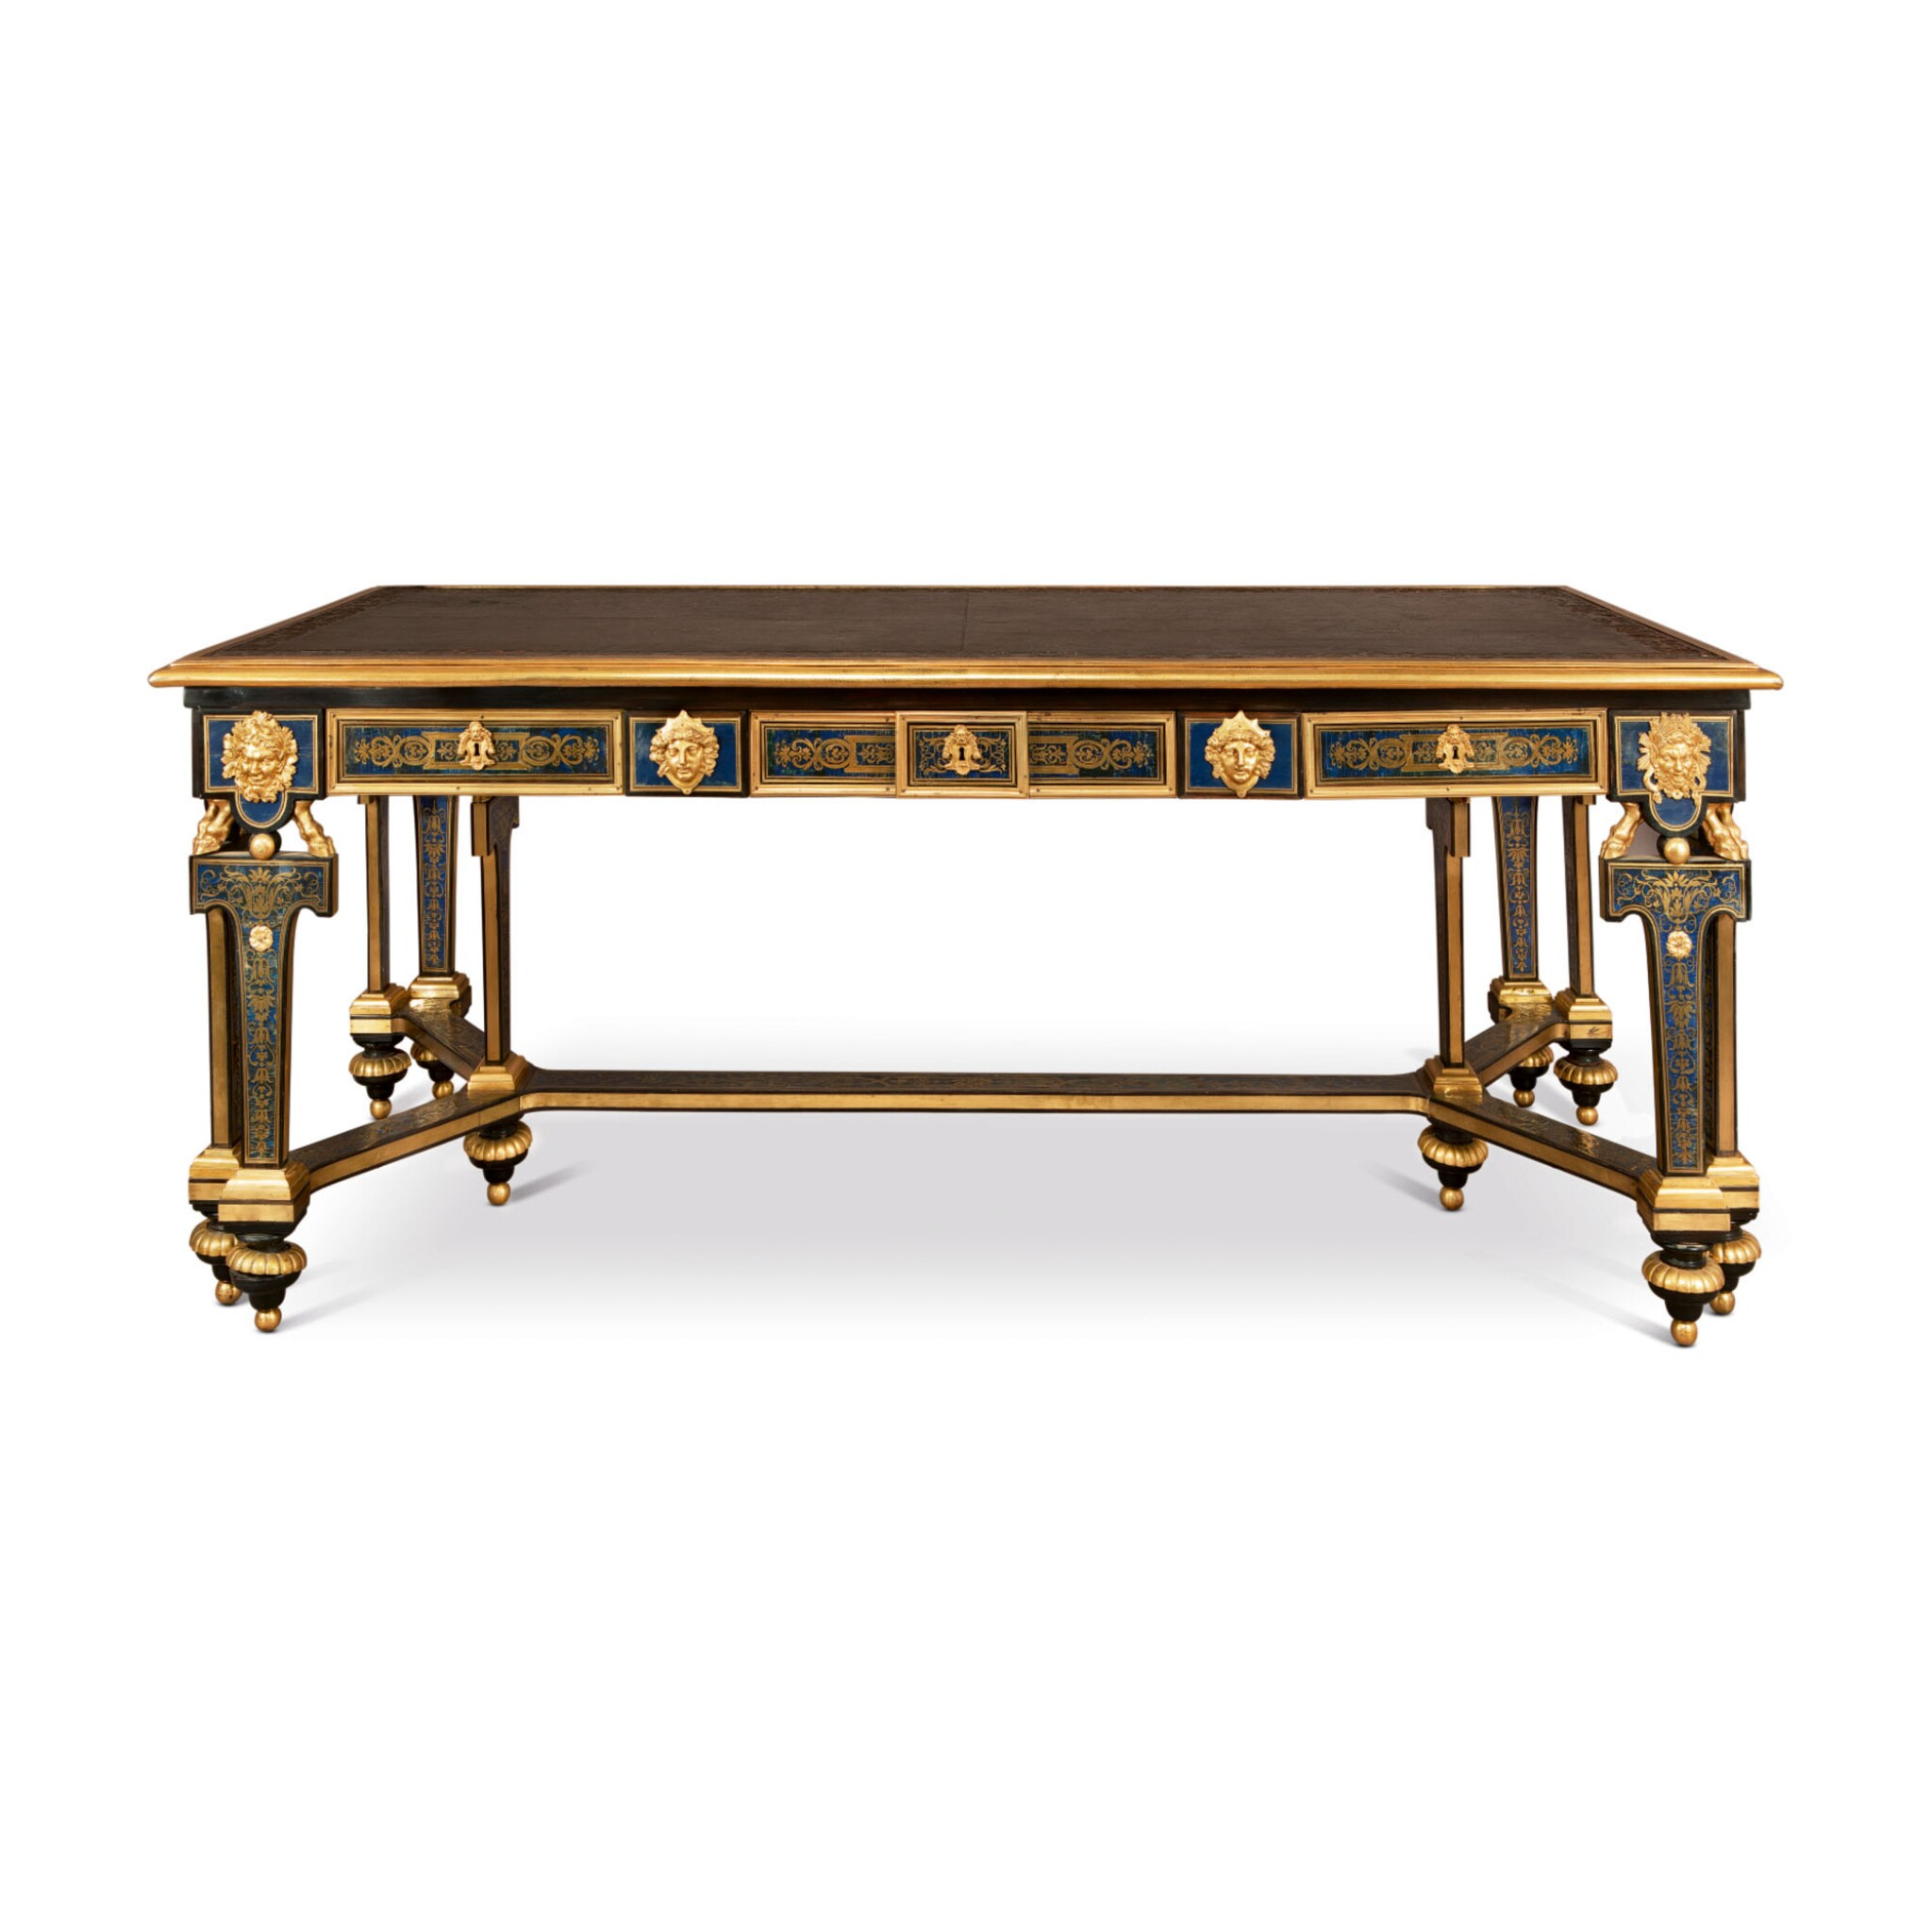 View full screen - View 1 of Lot 676. A LOUIS XIV STYLE GILT-BRONXE MOUNTED AND BRASS-INLAID EBONY AND BLUE-STAINED HORN BOULLE MARQUETRY LIBRARY TABLE, LATE 19TH/EARLY 20TH CENTURY.